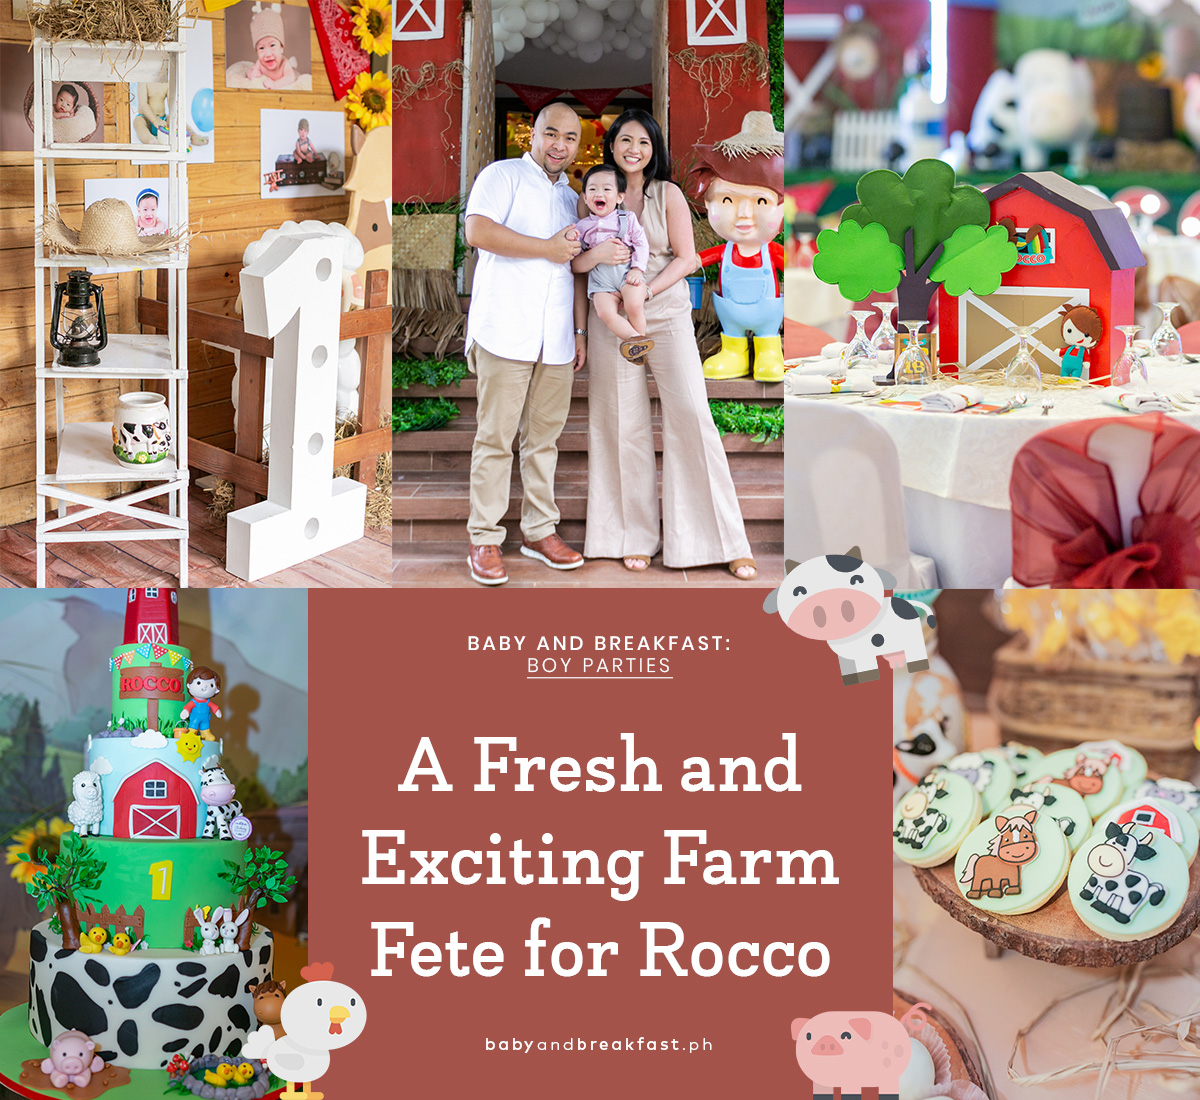 Baby and Breakfast: Boy Parties A Fresh and Exciting Farm Fete for Rocco